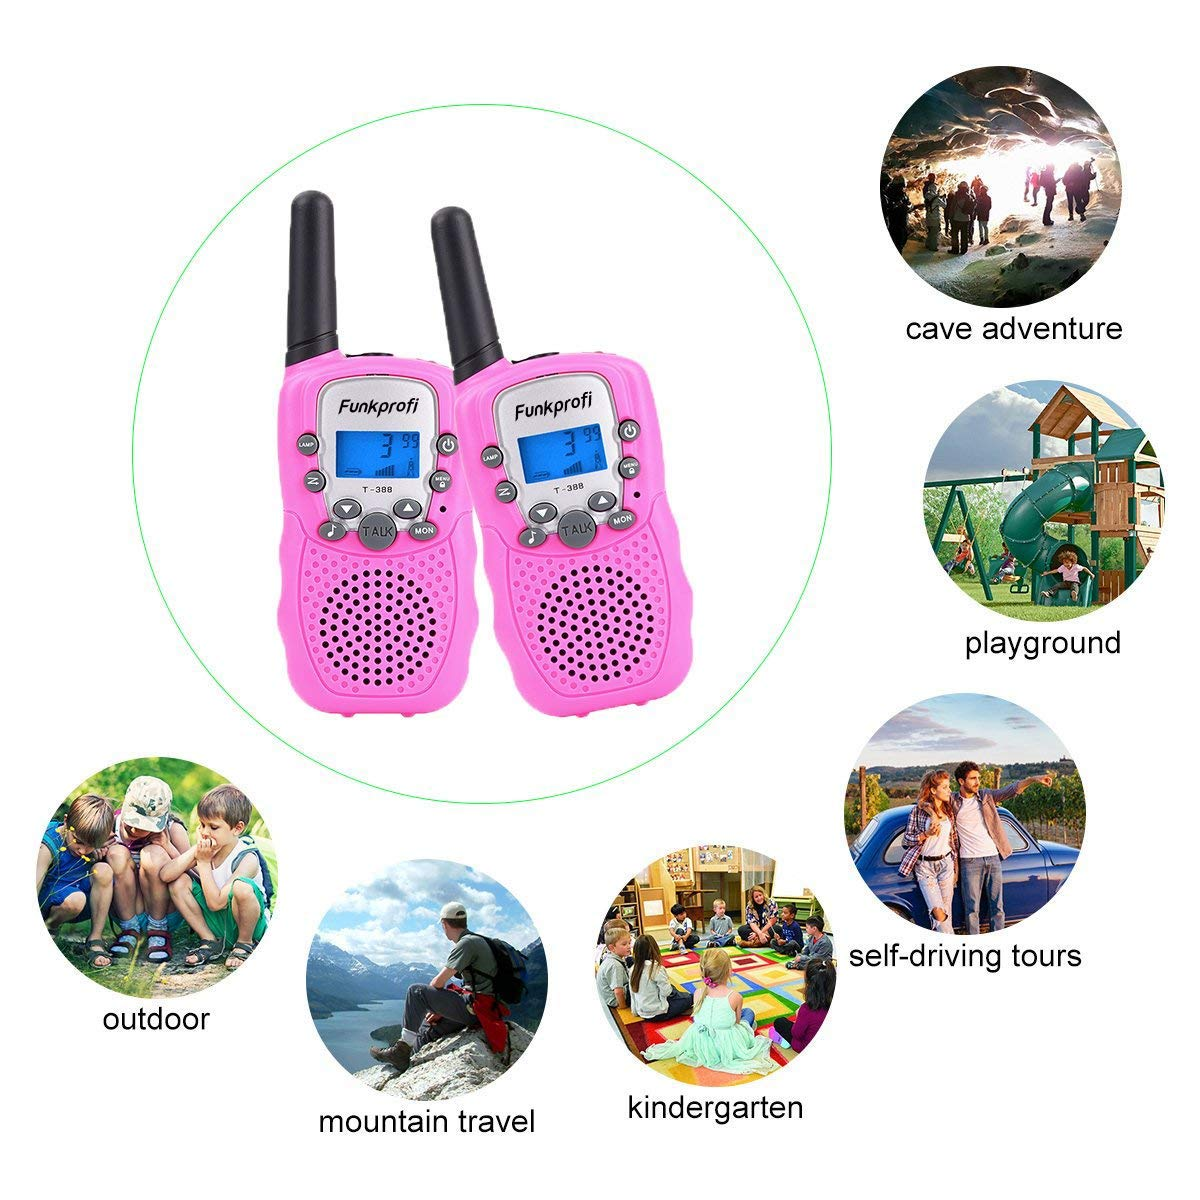 Funkprofi Walkie Talkies for Kids 22 Channels Long Range Rechargeable Walkie Talkies with Battery and Charger, Gift for Boys and Girls, 1 Pair (Pink) by Funkprofi (Image #5)